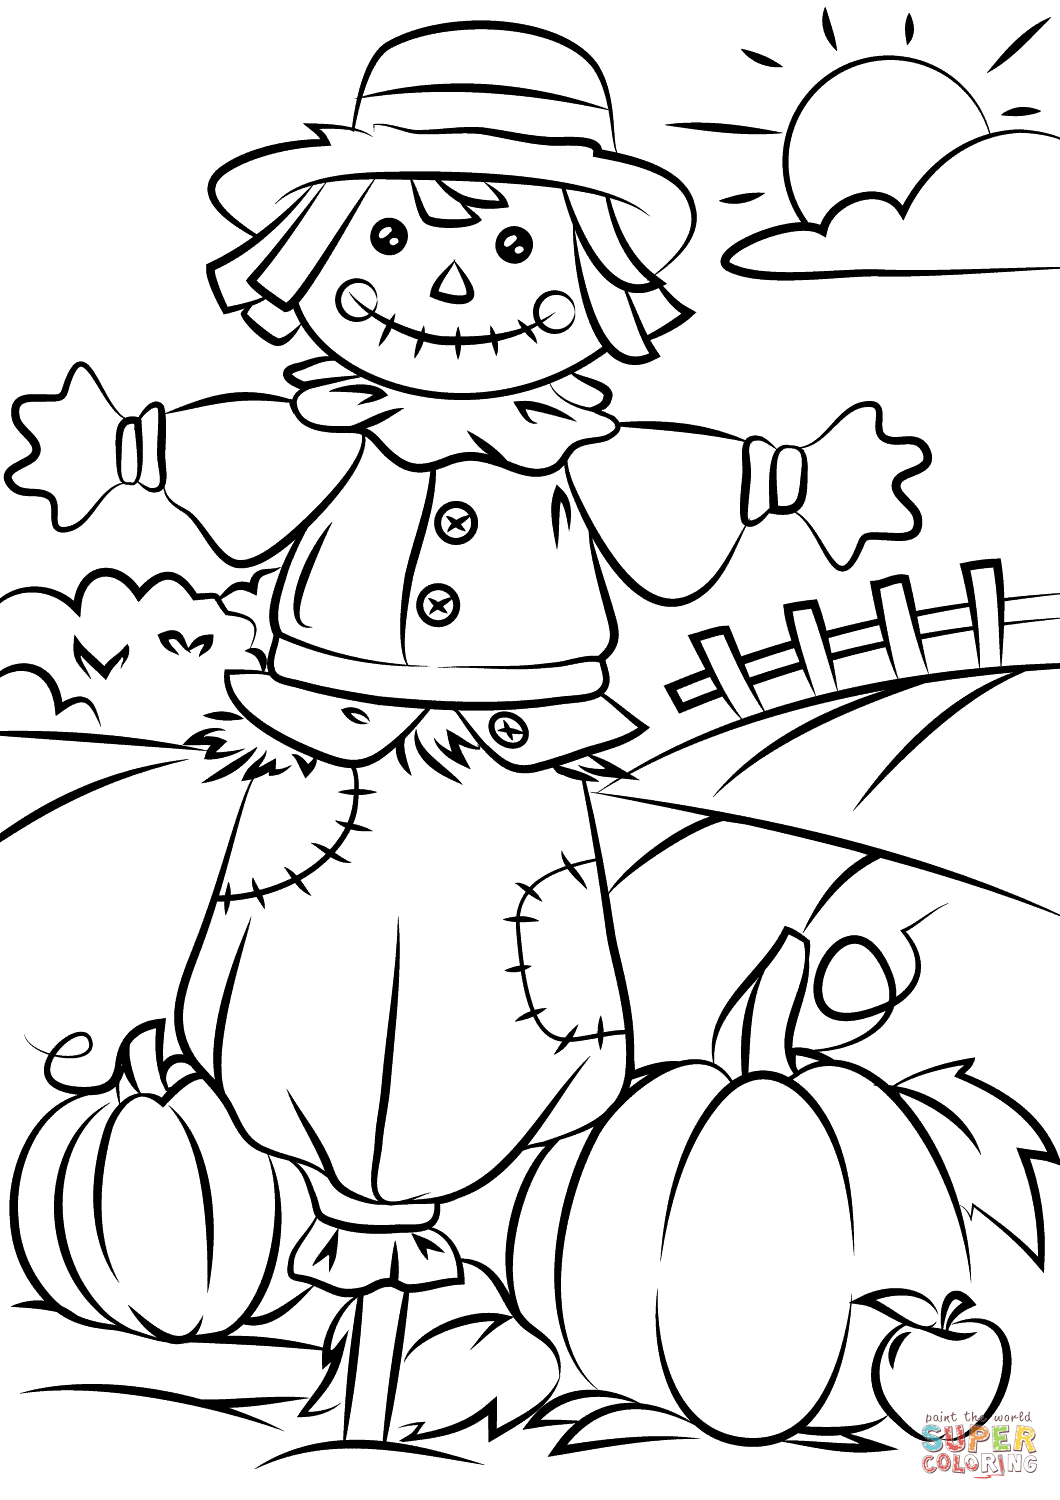 harvest coloring pictures harvest coloring pages best coloring pages for kids harvest coloring pictures 1 1